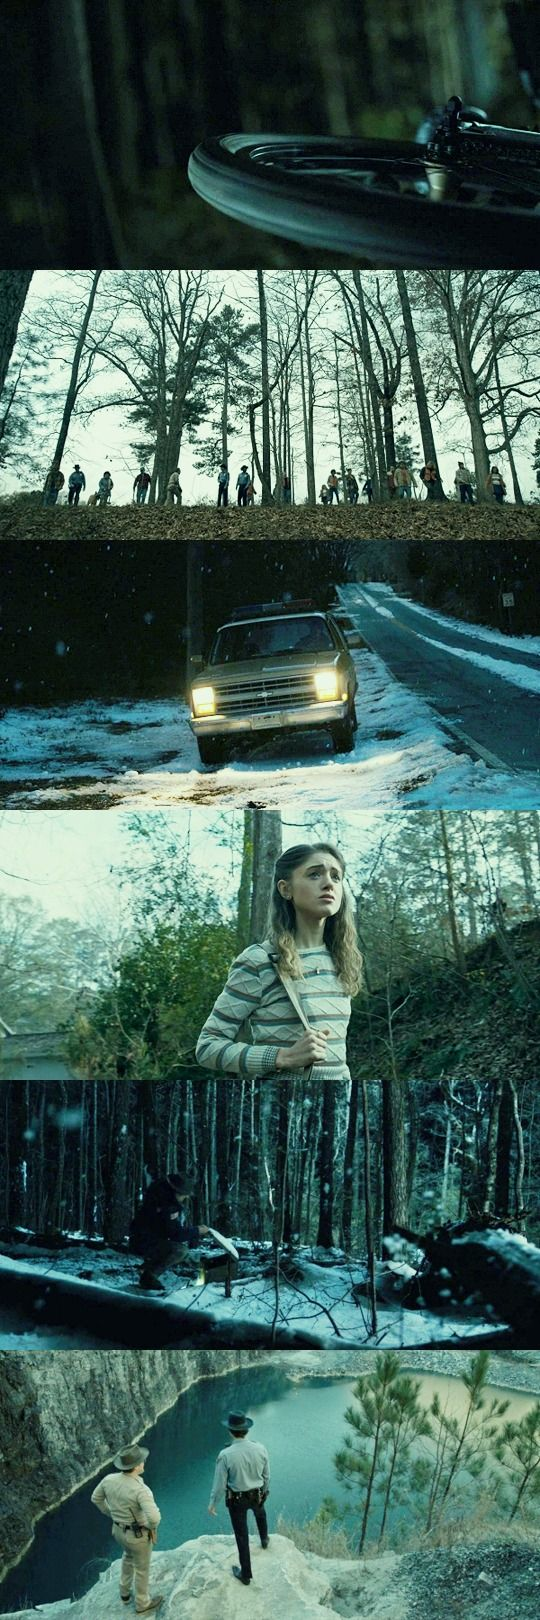 I used these shots from 'Stranger Things' because I think the shot compositions are brilliant. The dark colors and various shots usually give a vide of dismay and mystery.